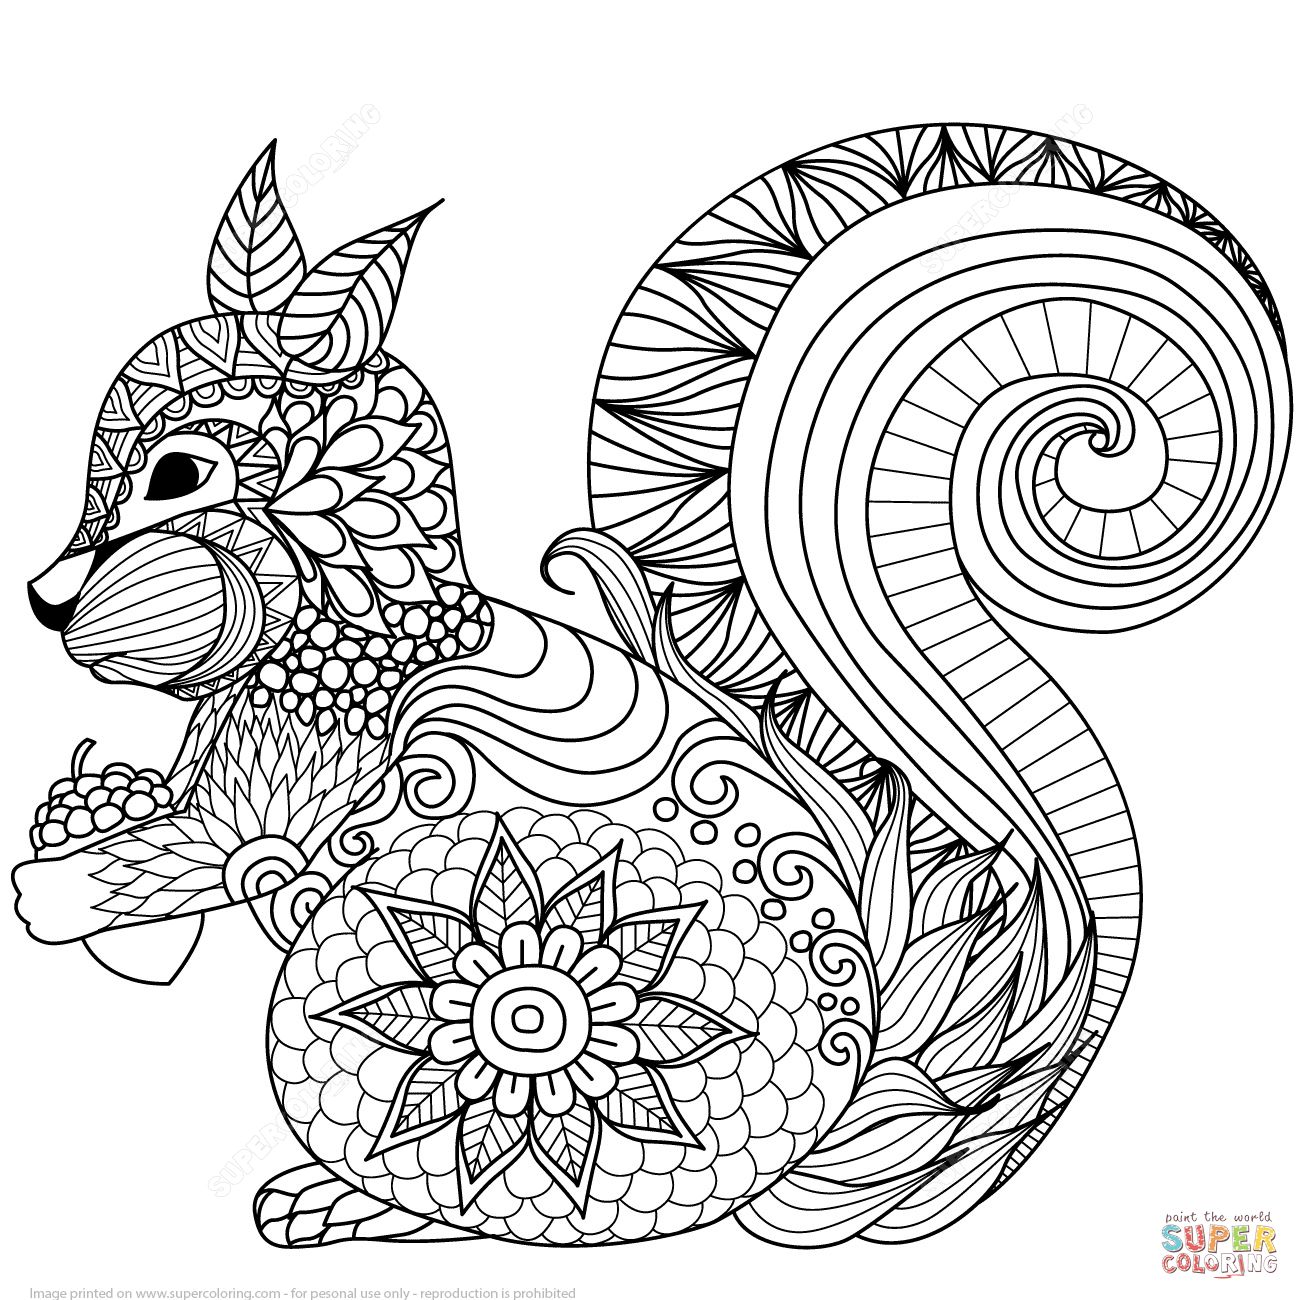 Free printable zentangle coloring pages for adults - Lovely Squirrel Zentangle Coloring Page Free Printable Coloring Zentangle And Coloring Pinterest Zentangle Squirrel And Free Printable